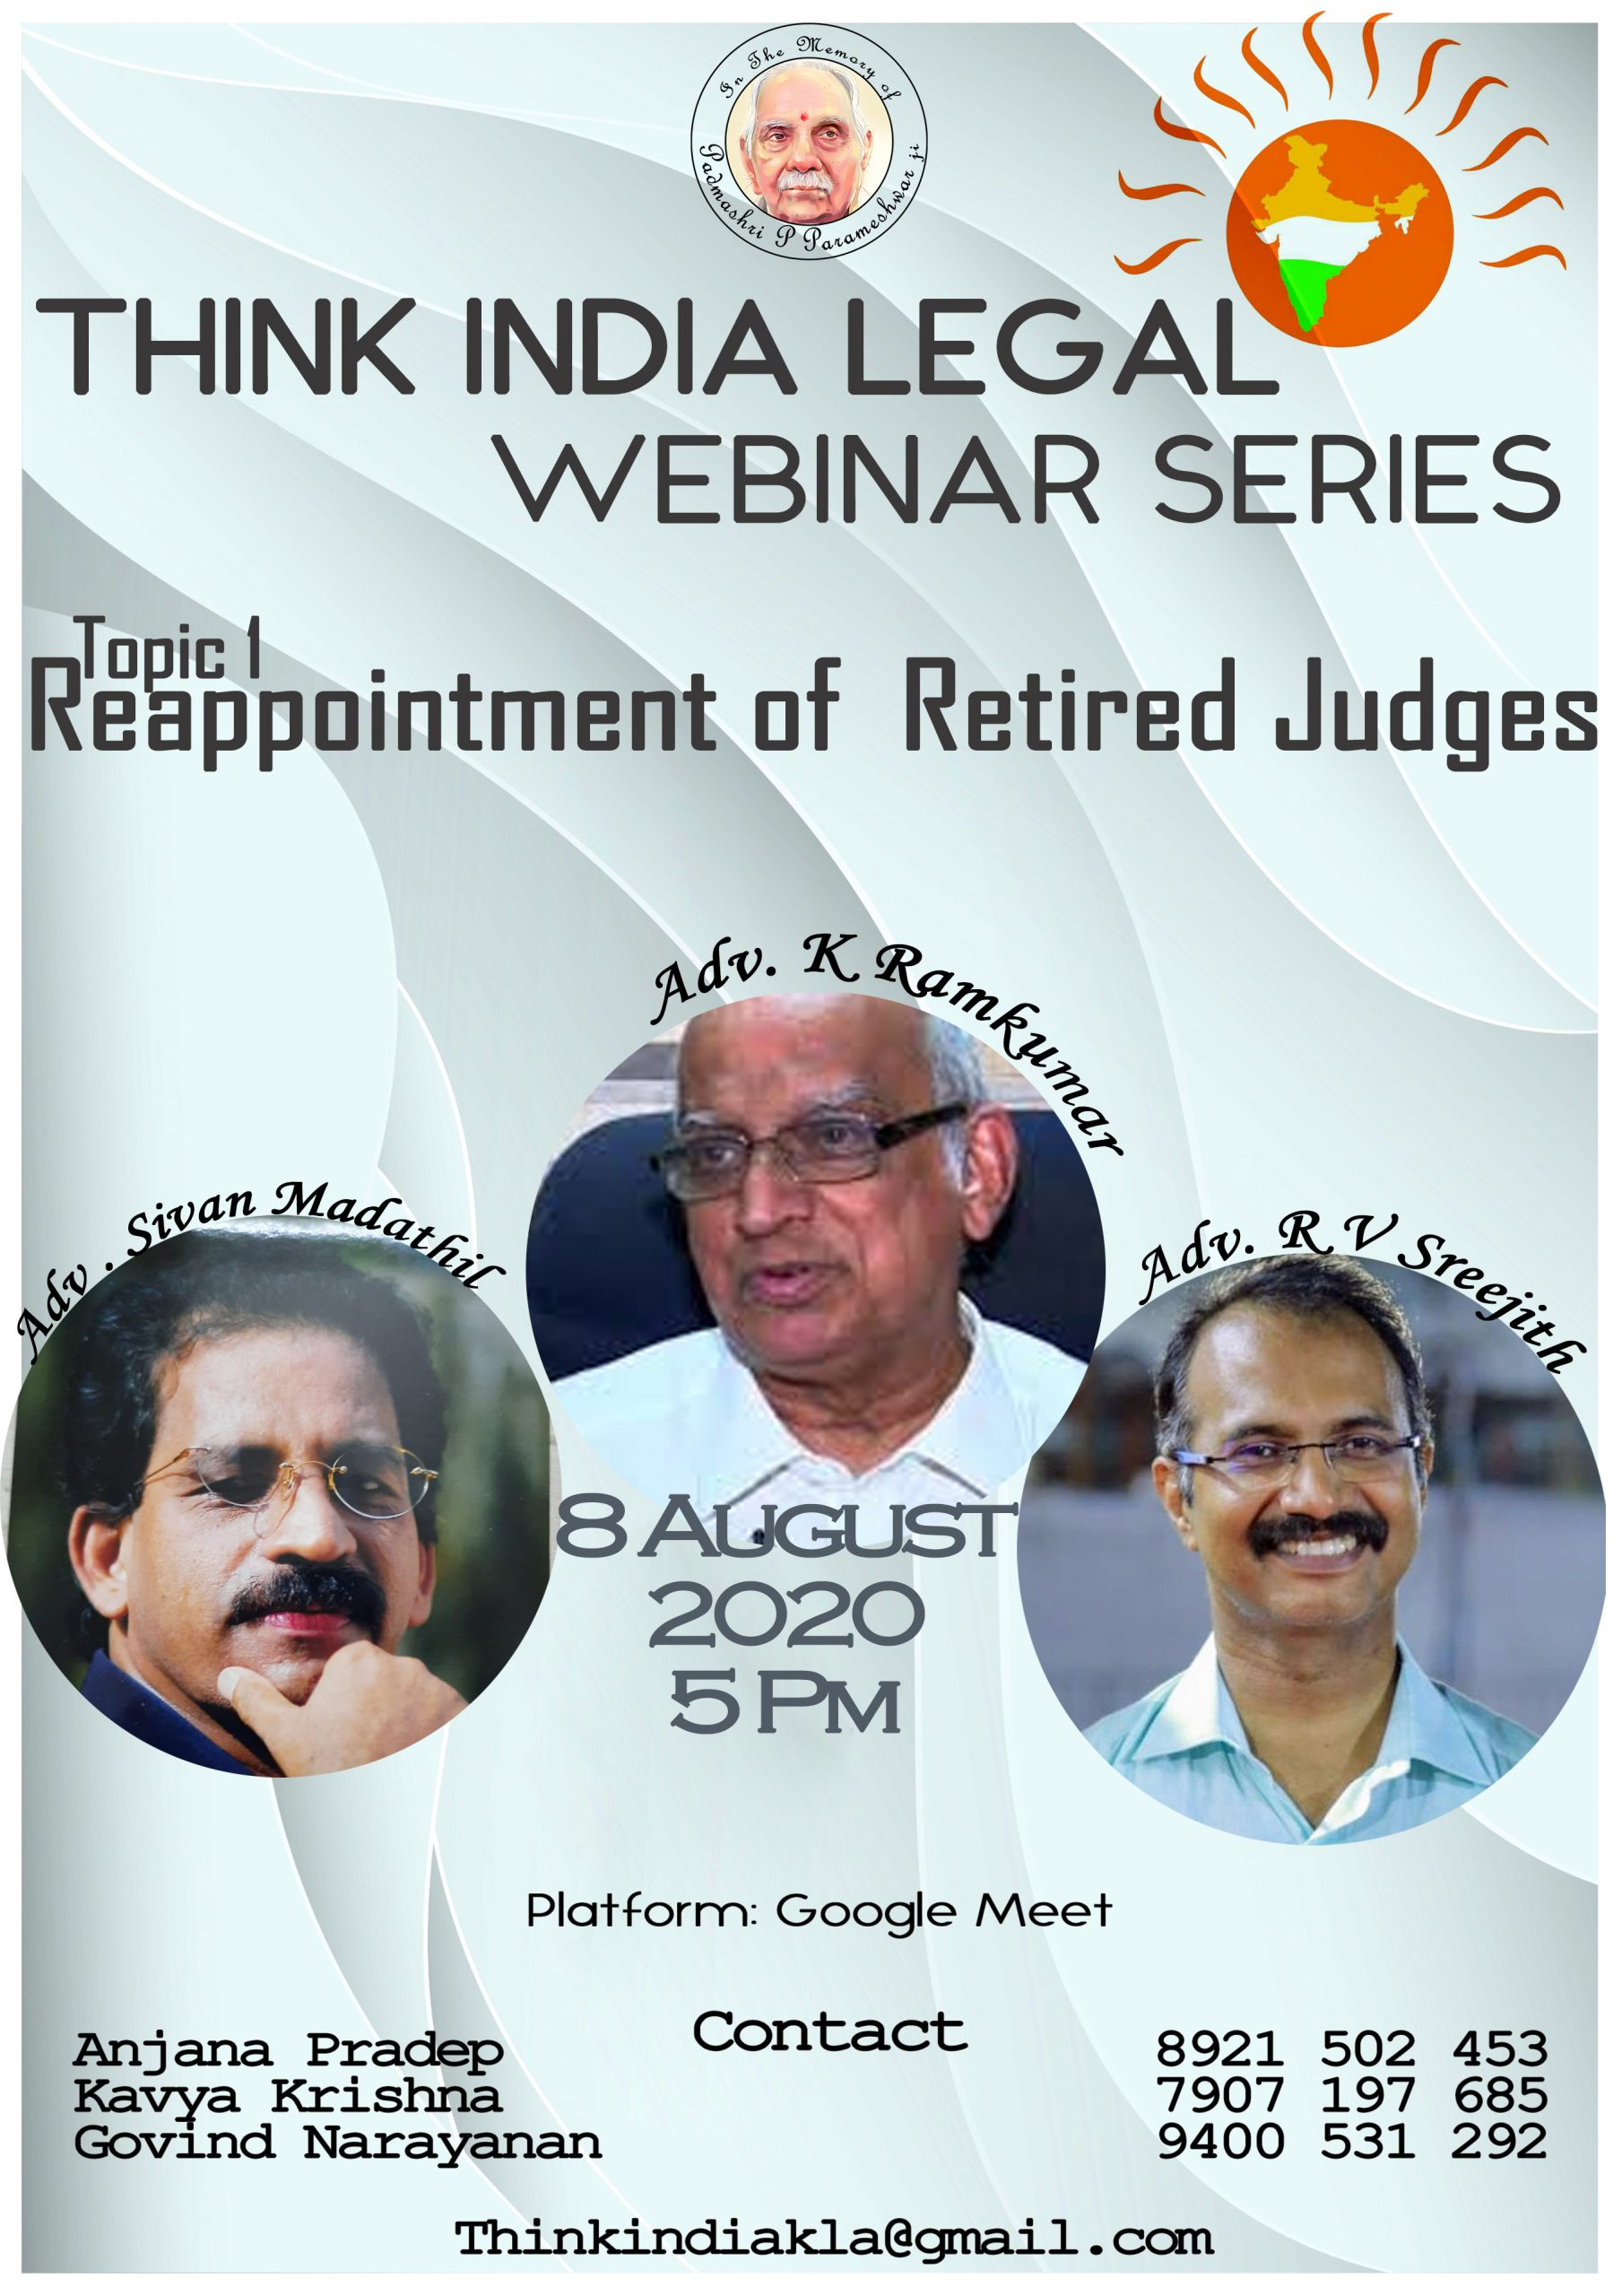 Think India's Webinar Series on Reappointment of Retired Judges